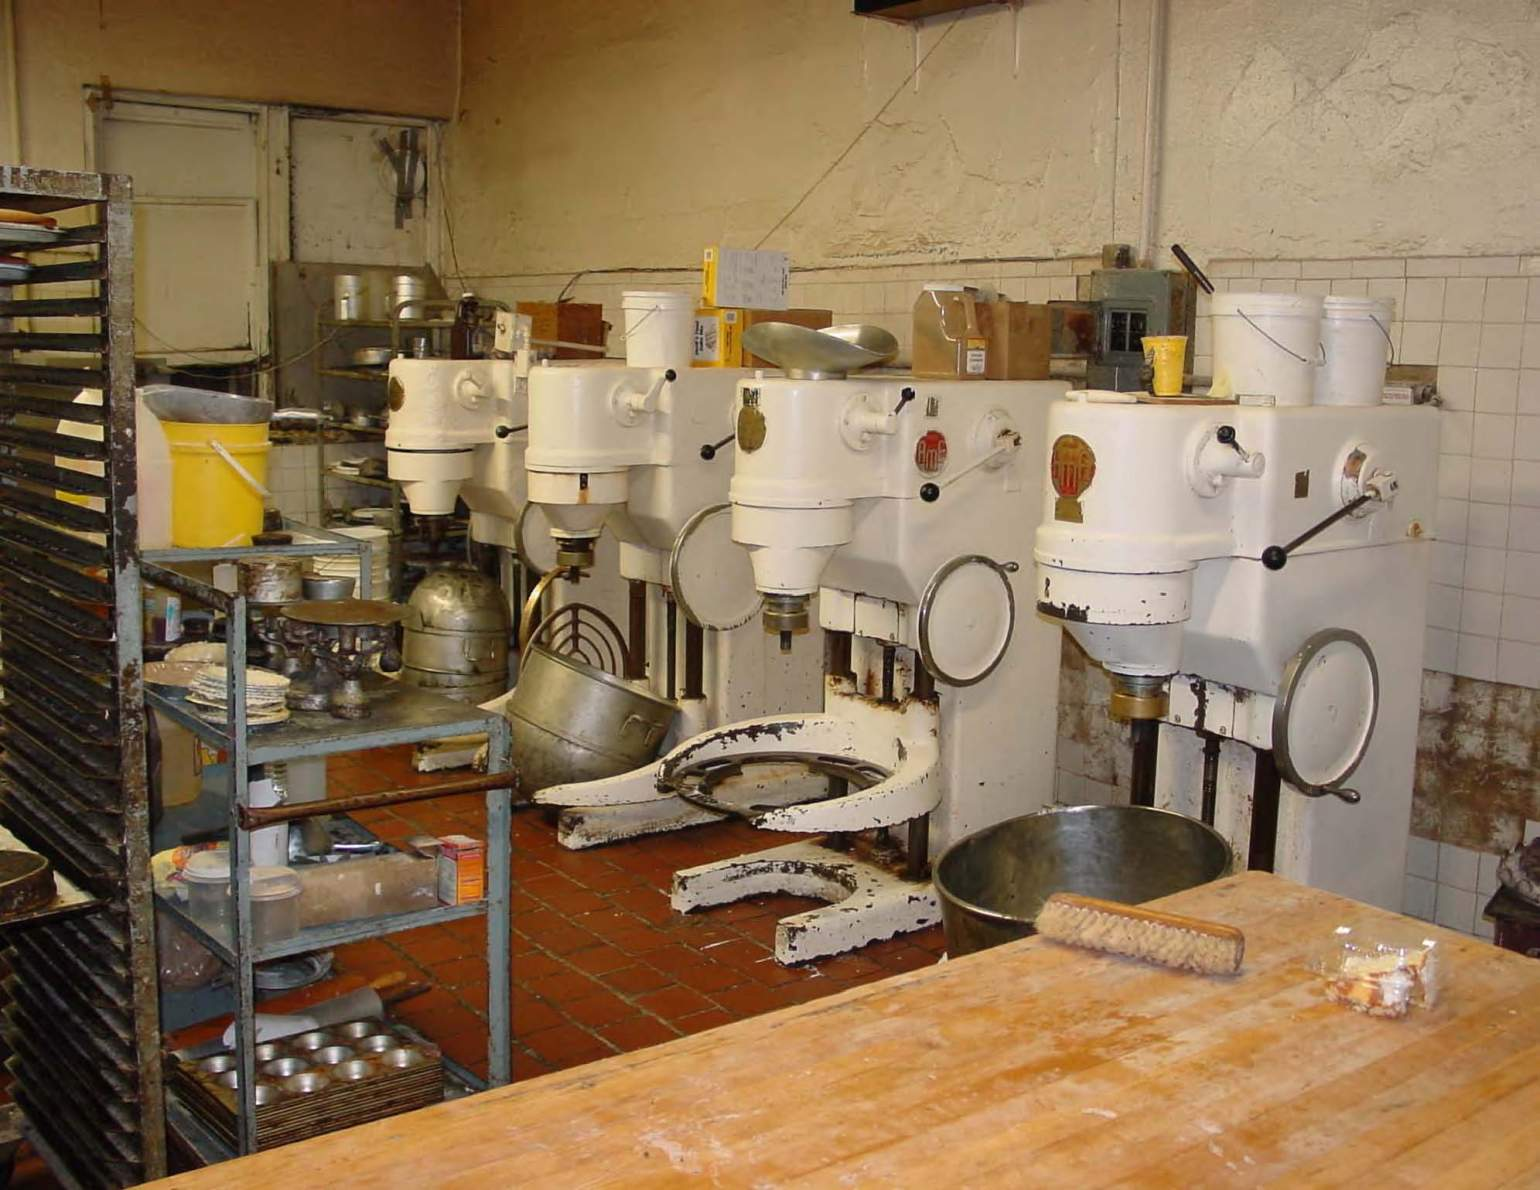 list of equipment needed for wholesale bakery business plan one